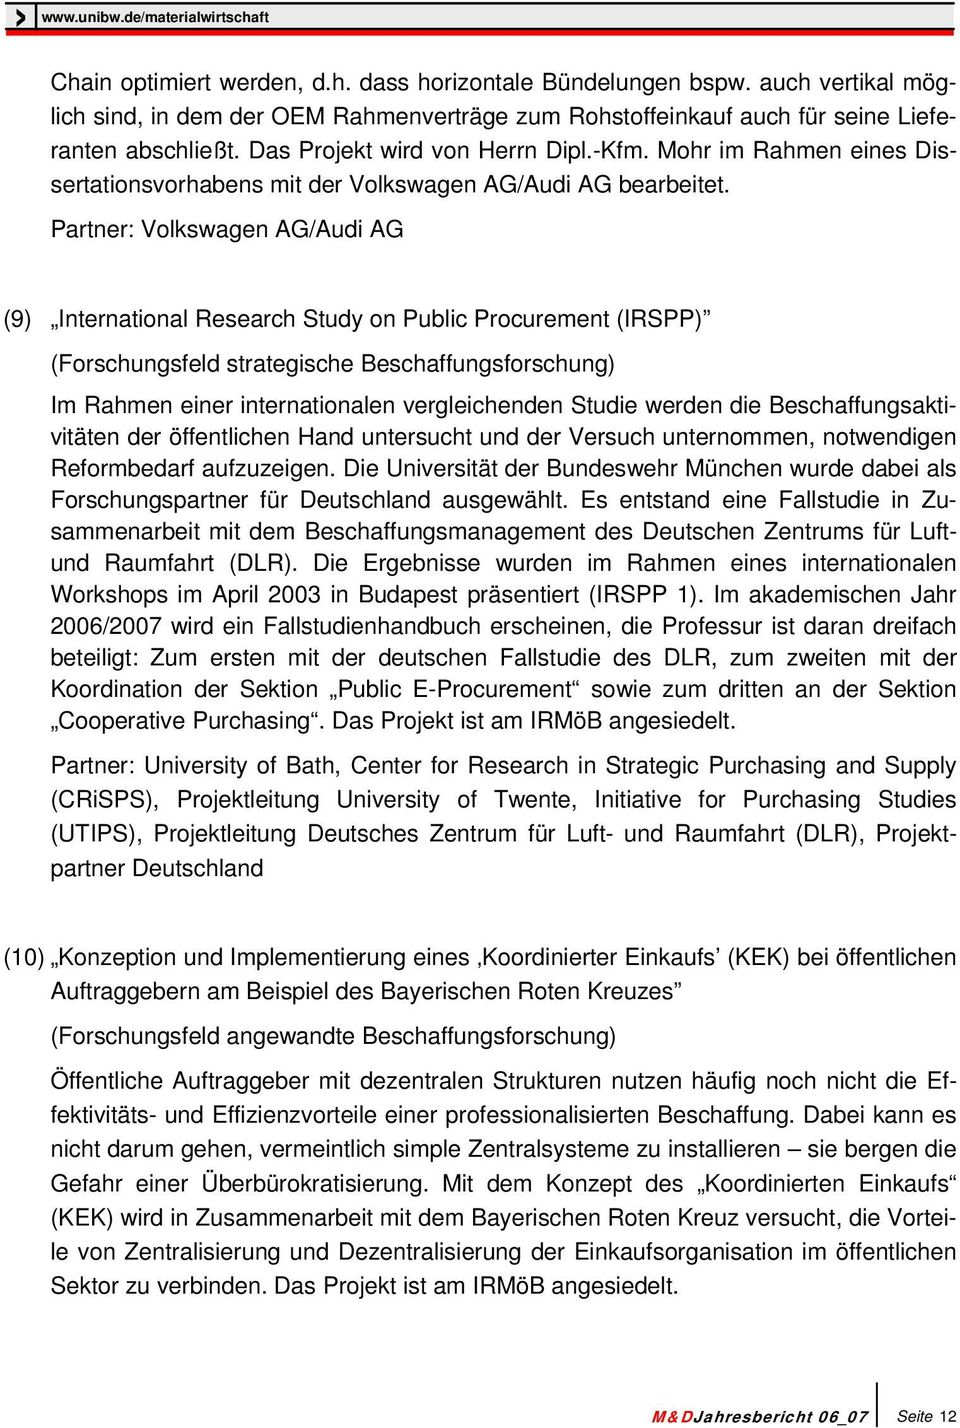 Partner: Volkswagen AG/Audi AG (9) International Research Study on Public Procurement (IRSPP) (Forschungsfeld strategische Beschaffungsforschung) Im Rahmen einer internationalen vergleichenden Studie